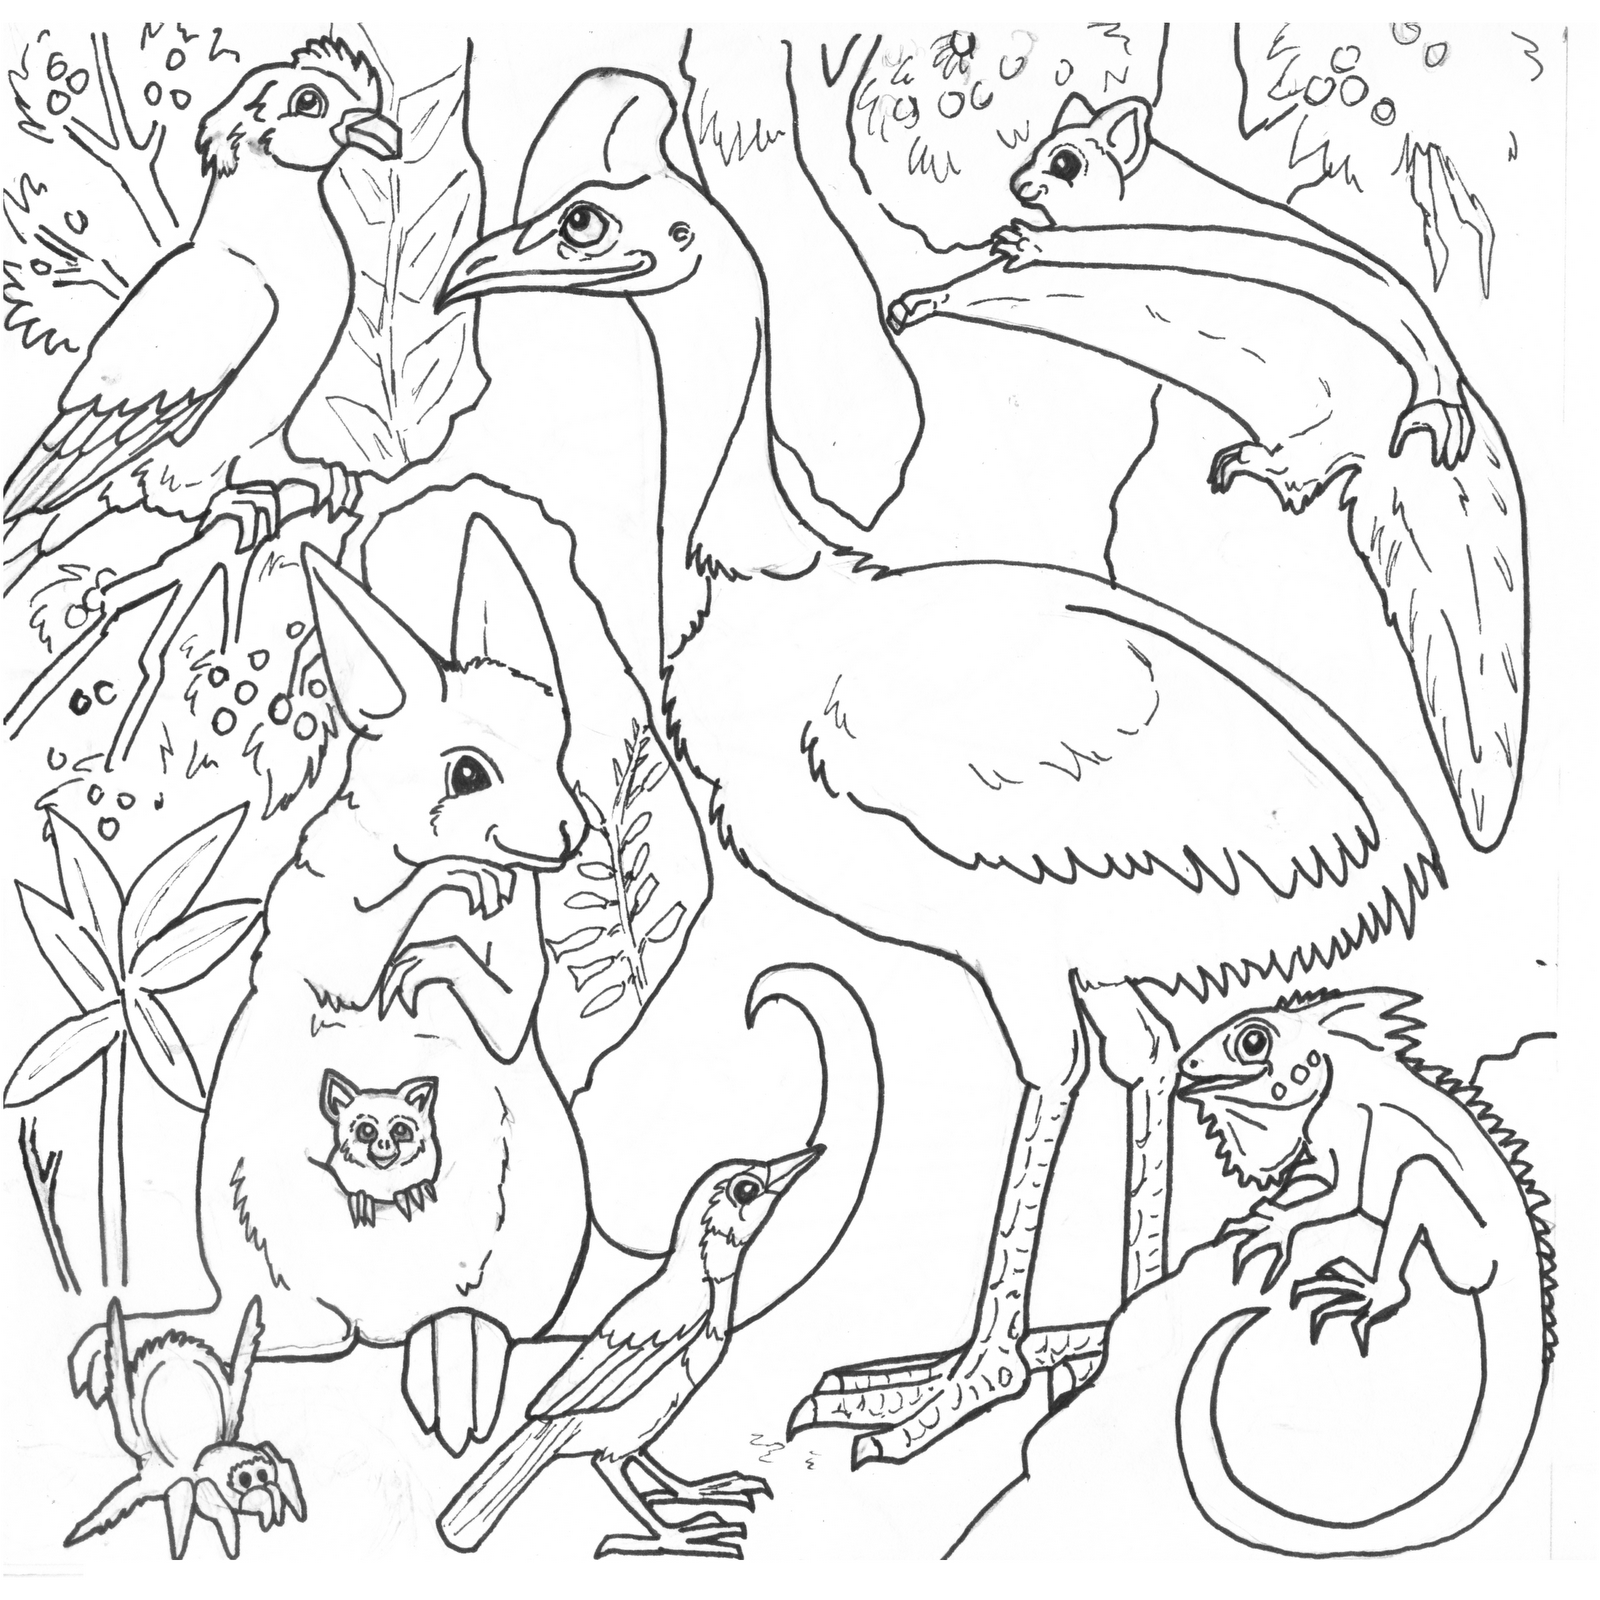 rainforest animal coloring pages - Jungle Animals Online Coloring Pages Page 1 The Color